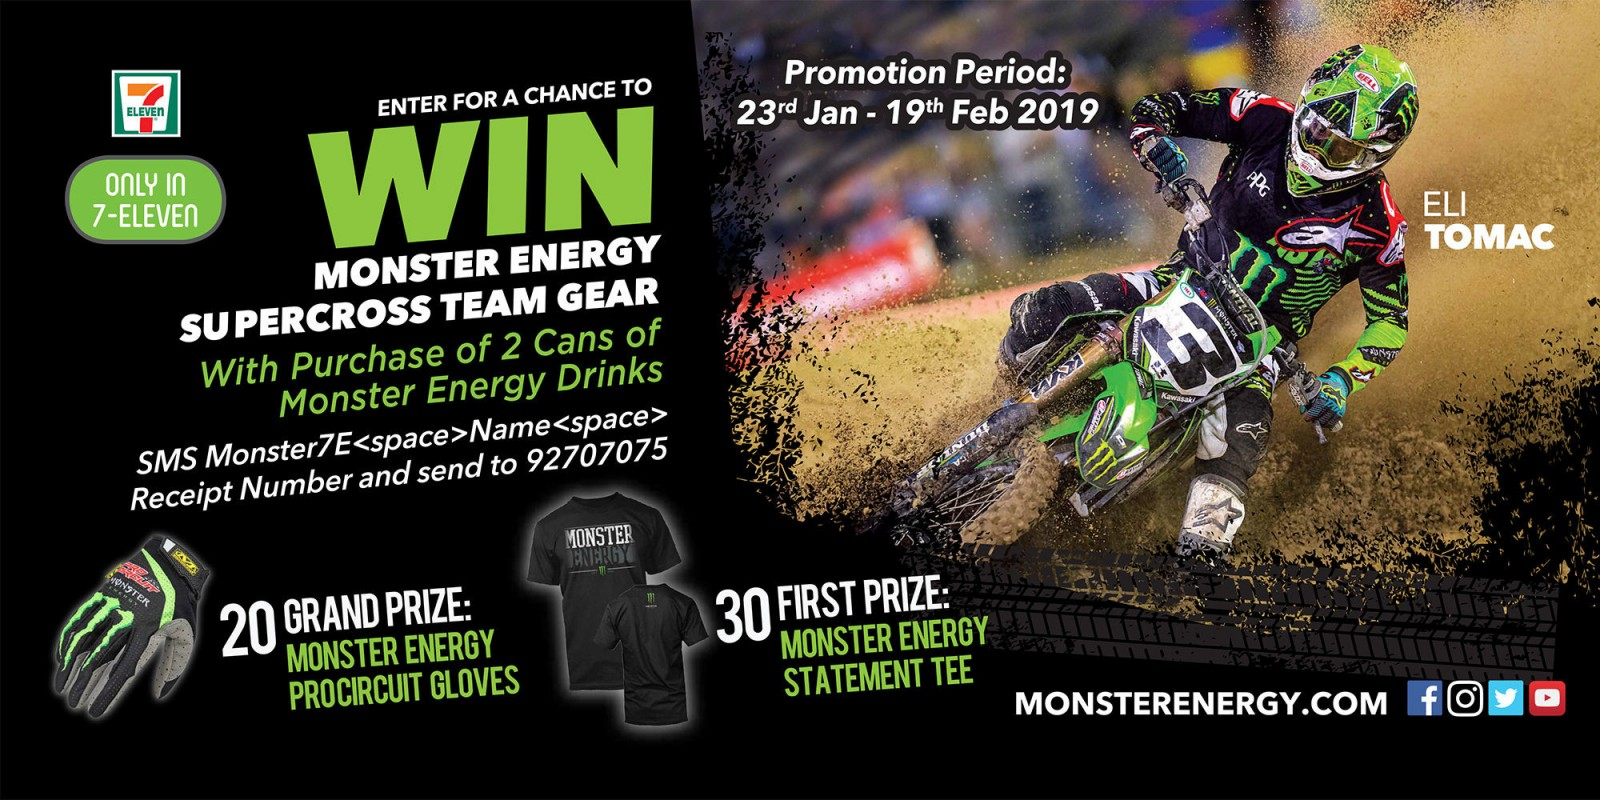 ENTER FOR A CHANCE TO WIN MONSTER ENERGY SUPERCROSS TEAM GEAR